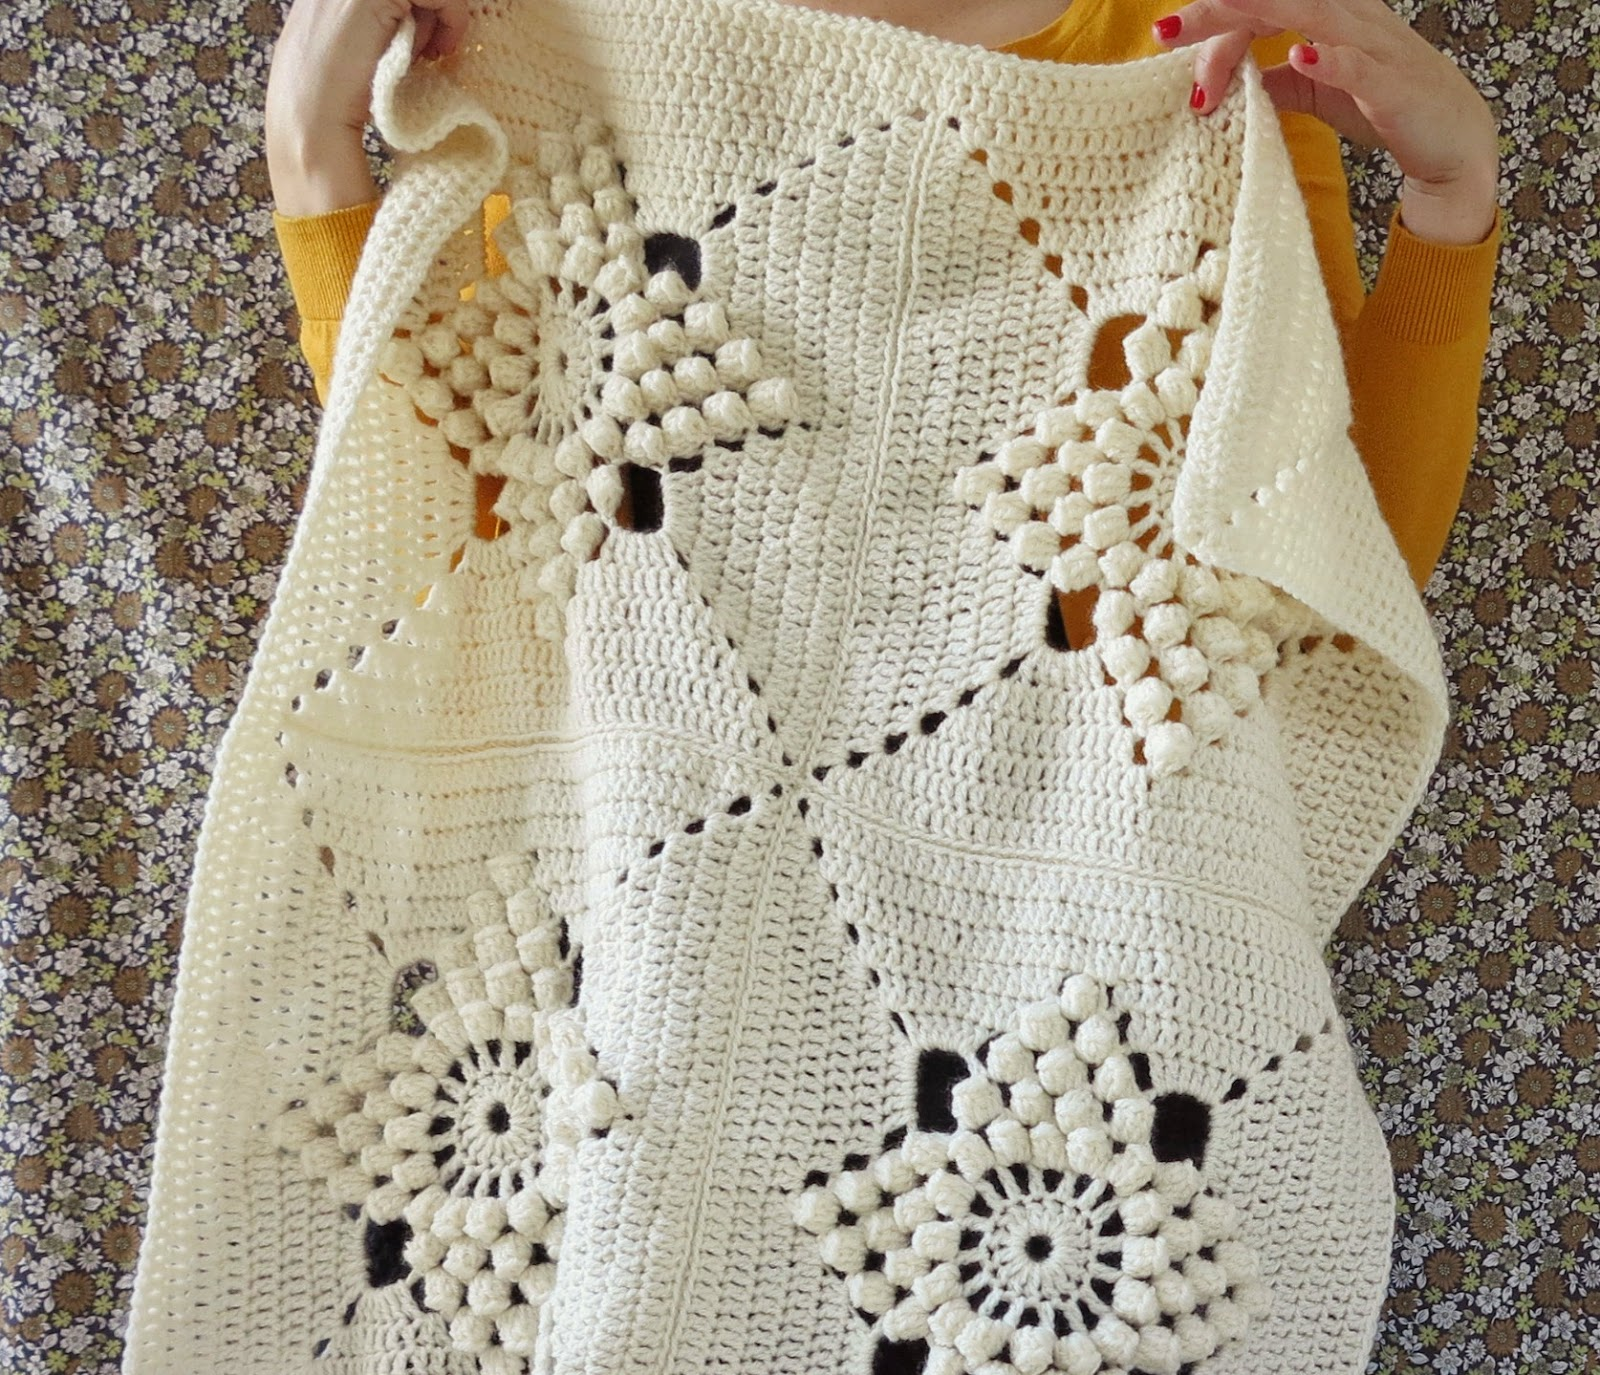 Crochet Daily : ... Stunning Will Make You Fall In Love Instantly - Knit And Crochet Daily